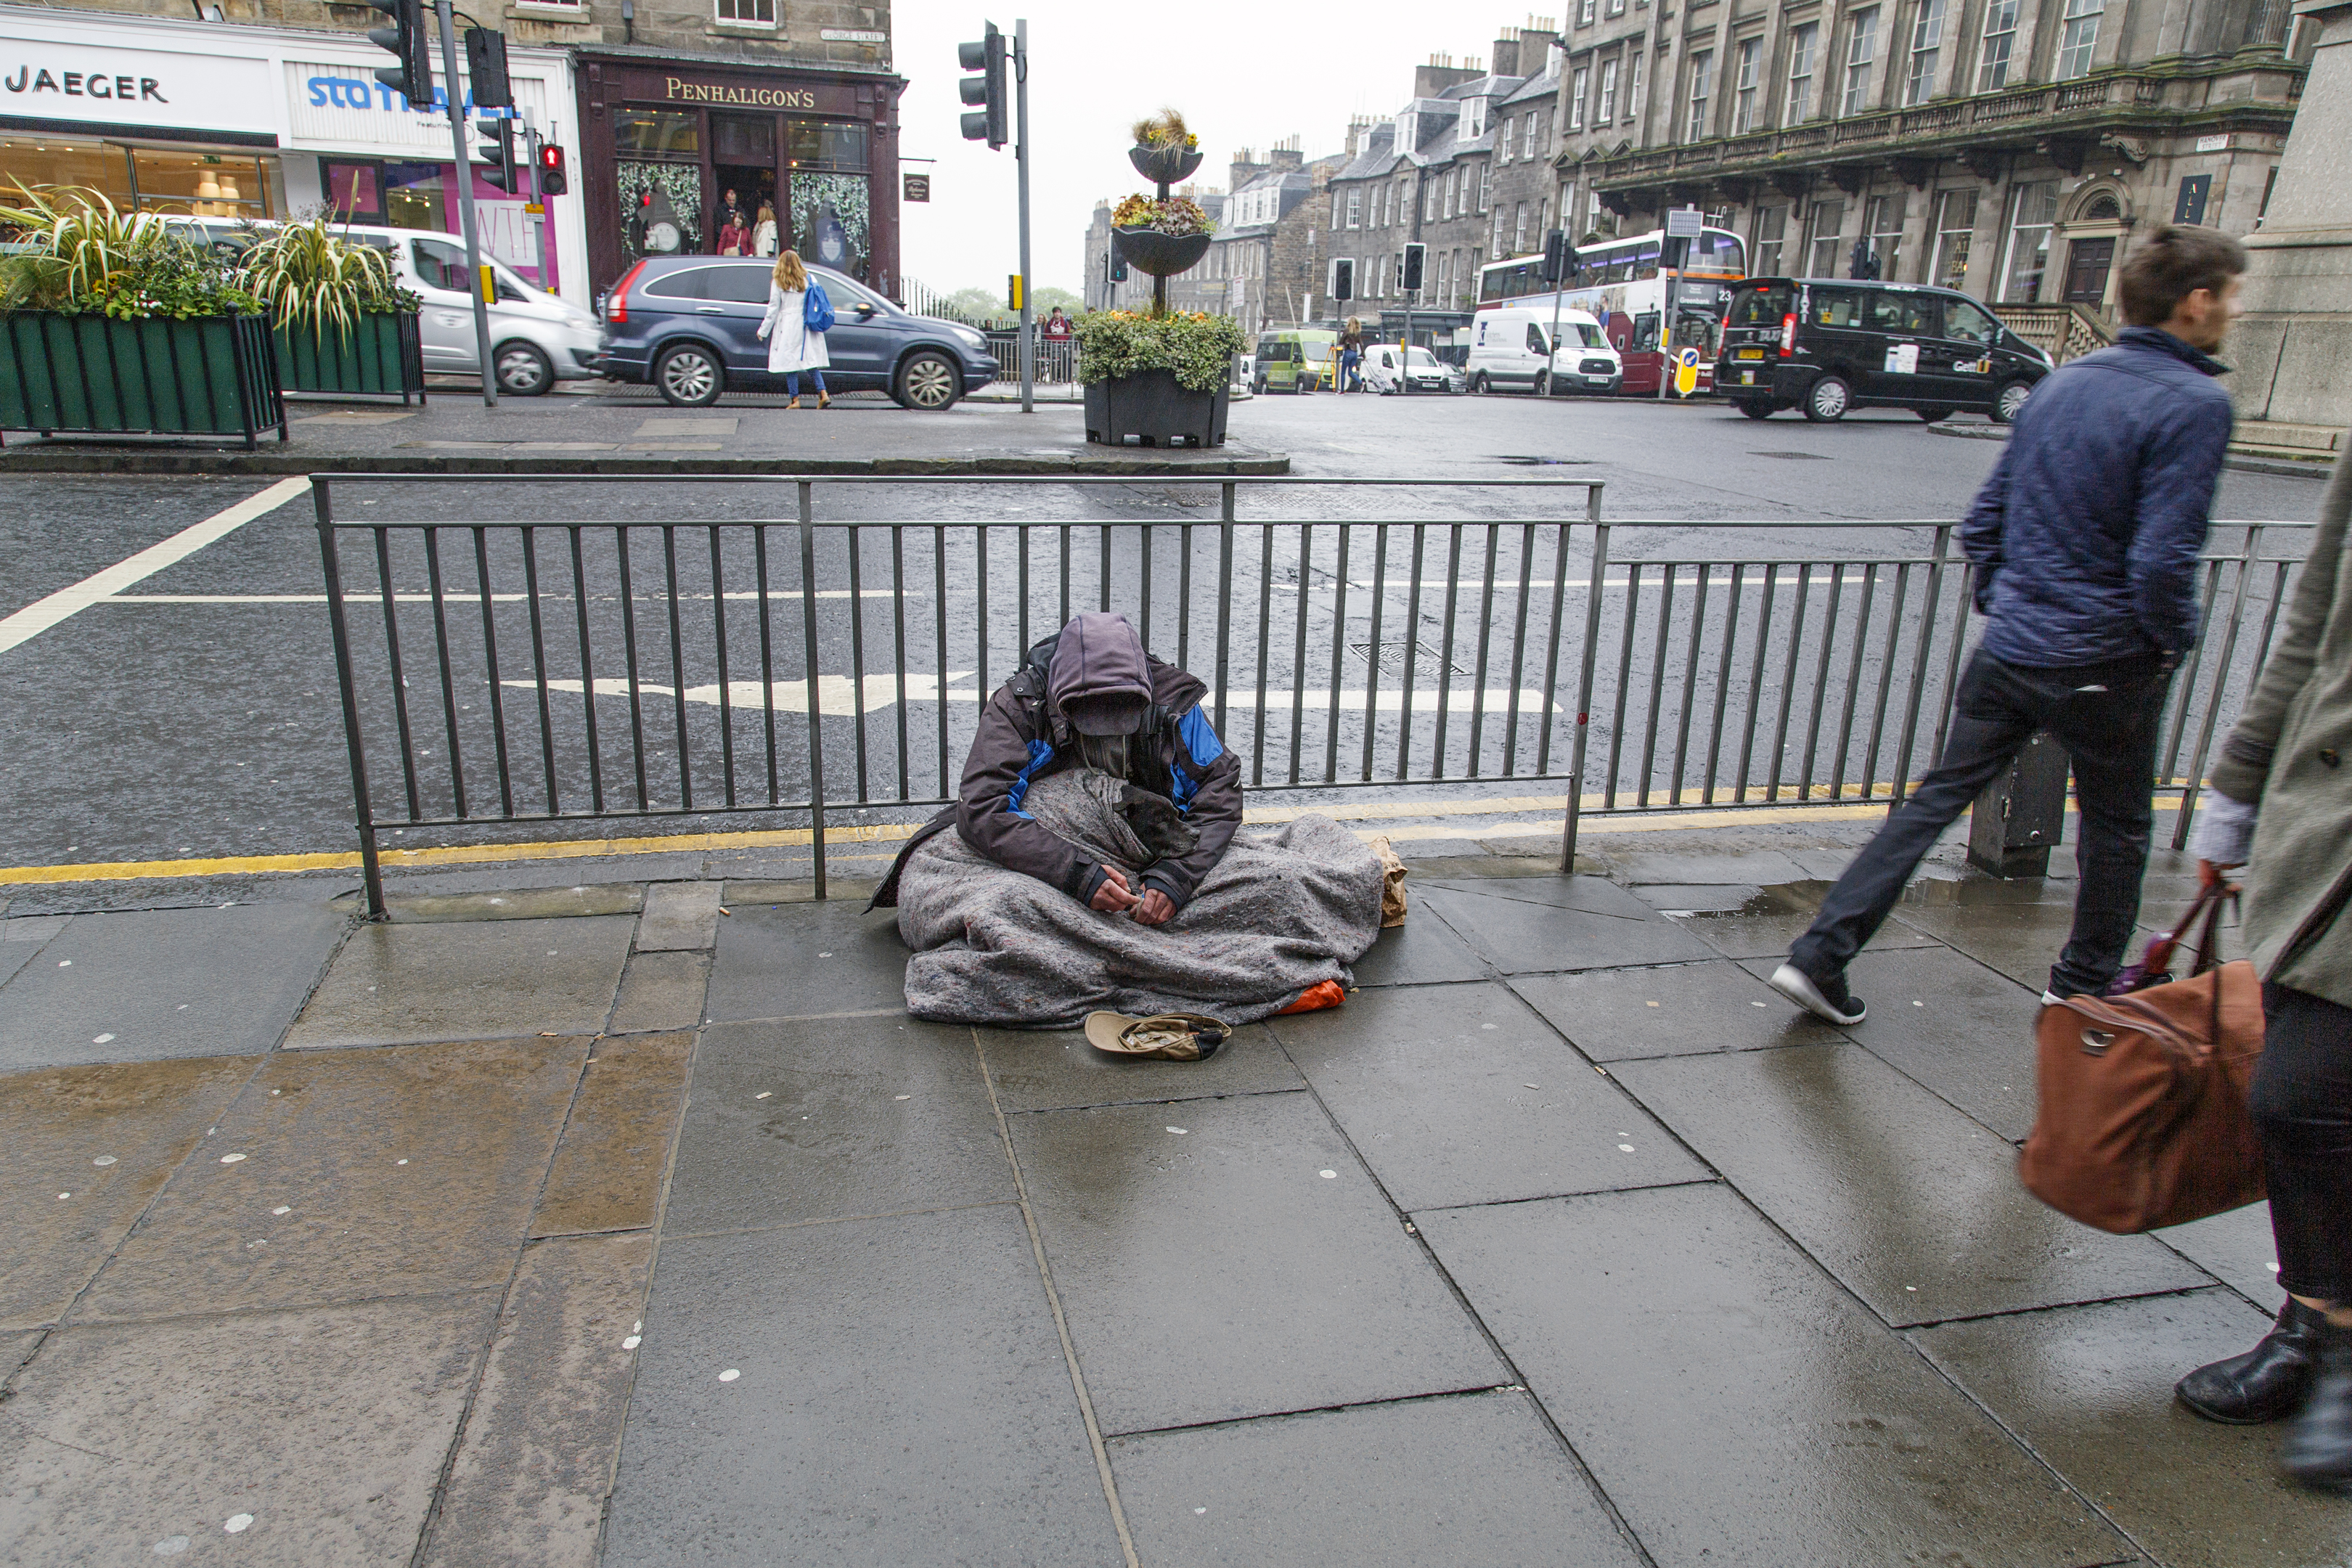 If current economic policies continue unchanged, the number of rough sleepers is expected to nearly double in 25 years from 800 to 1,500 (iStock)